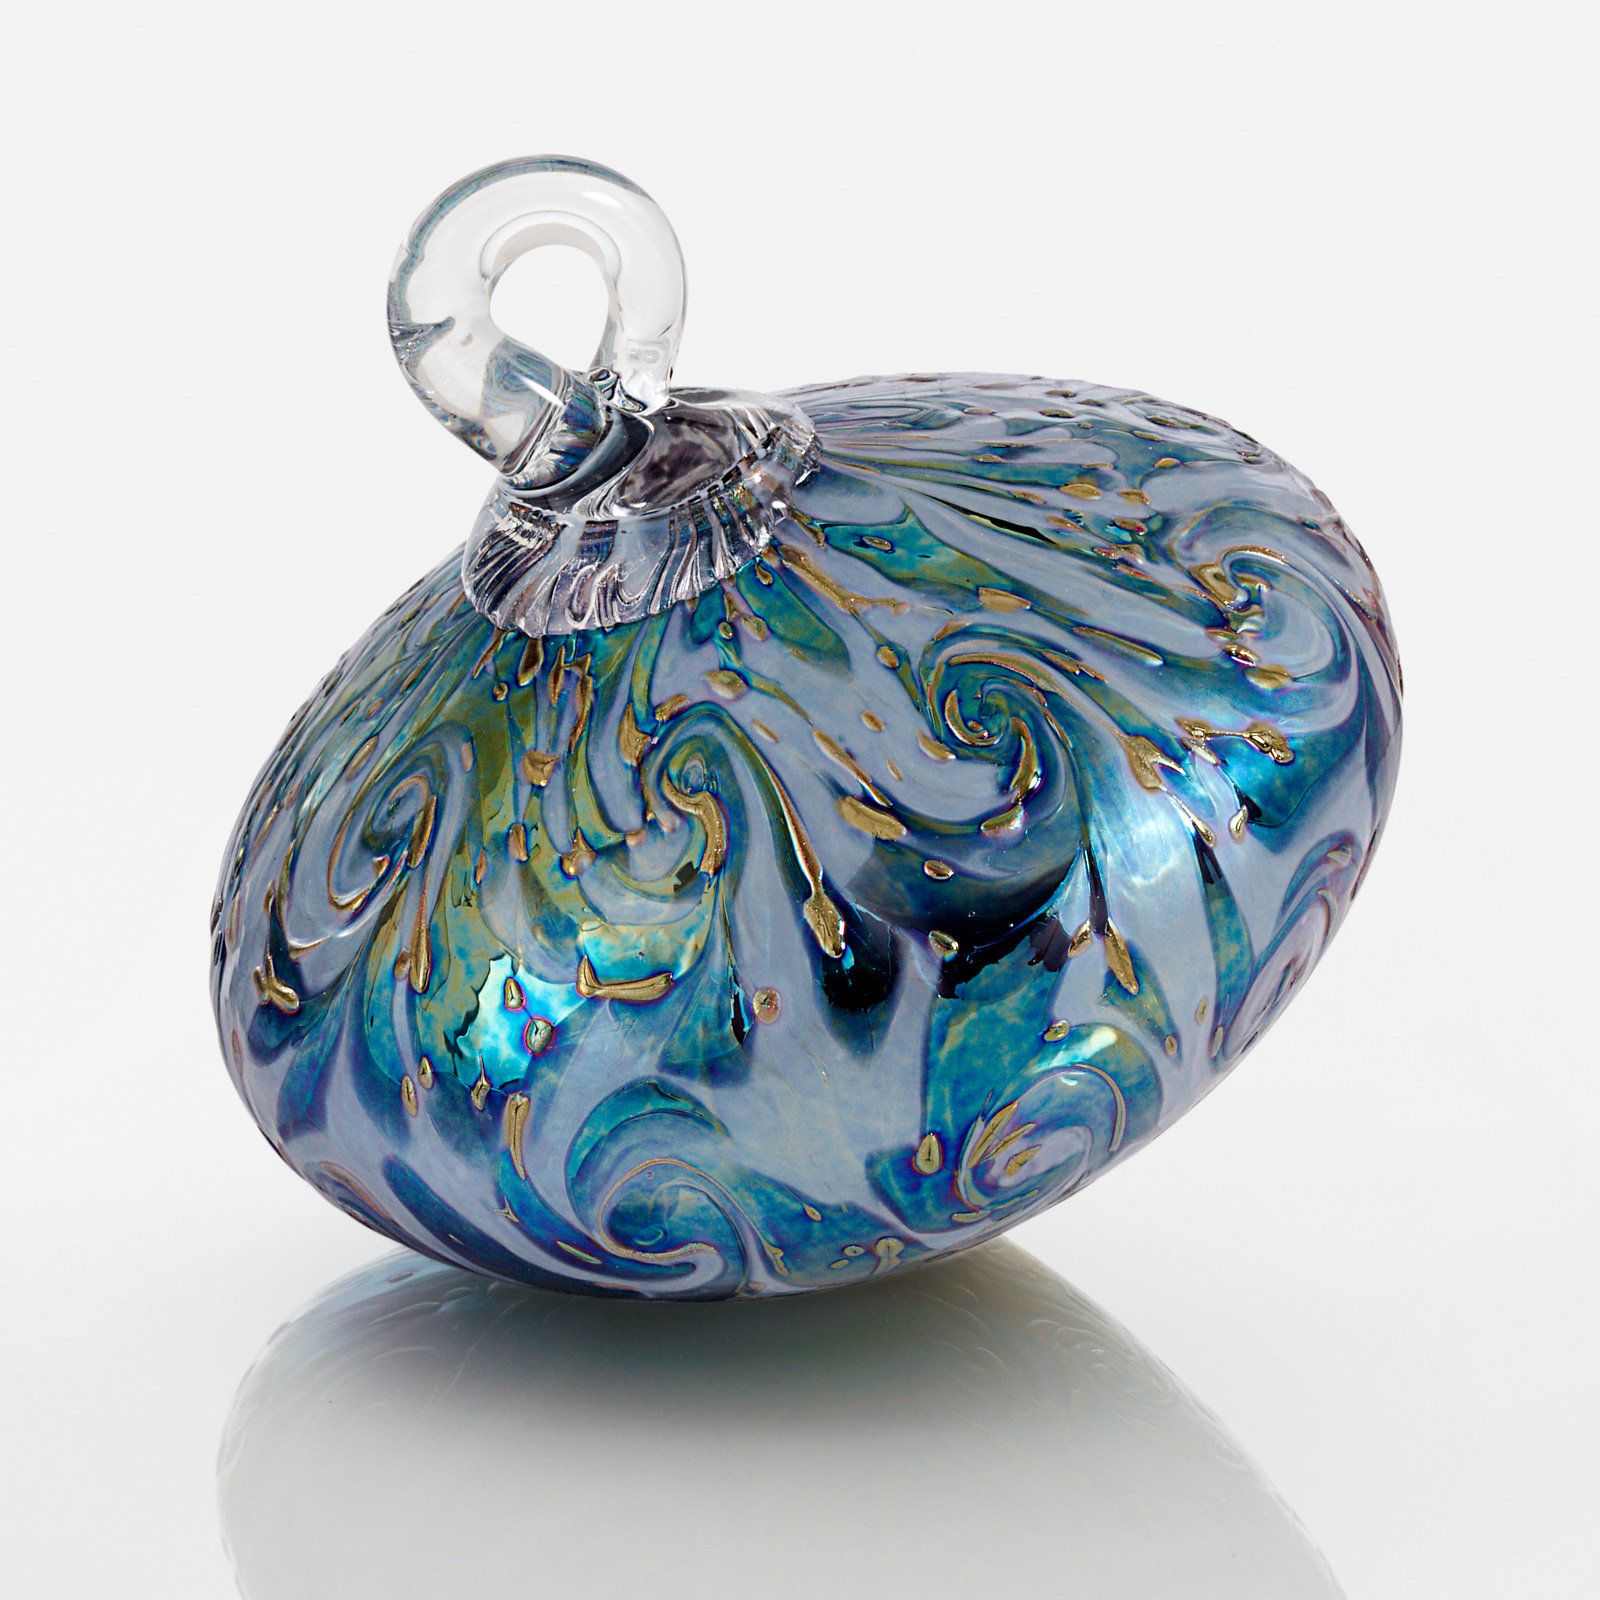 This Luminous Blown Glass Ornament Dazzles With Ripples Of Iridescent